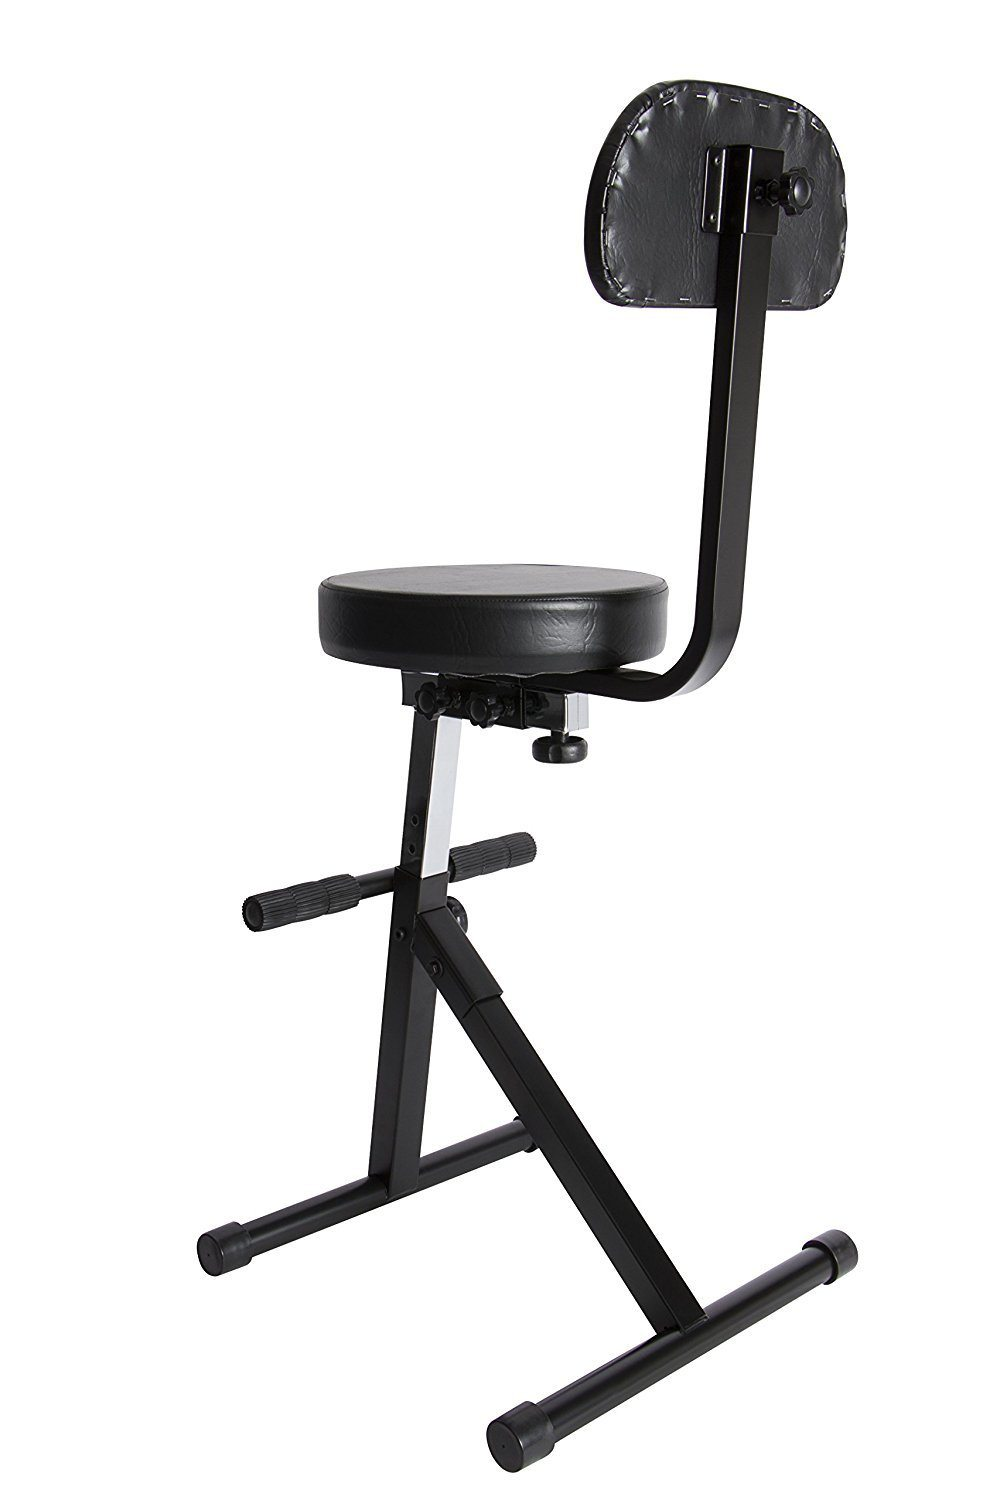 Surprising 10 Best Guitar Stools You Will Love In 2019 Karaoke Bananza Alphanode Cool Chair Designs And Ideas Alphanodeonline